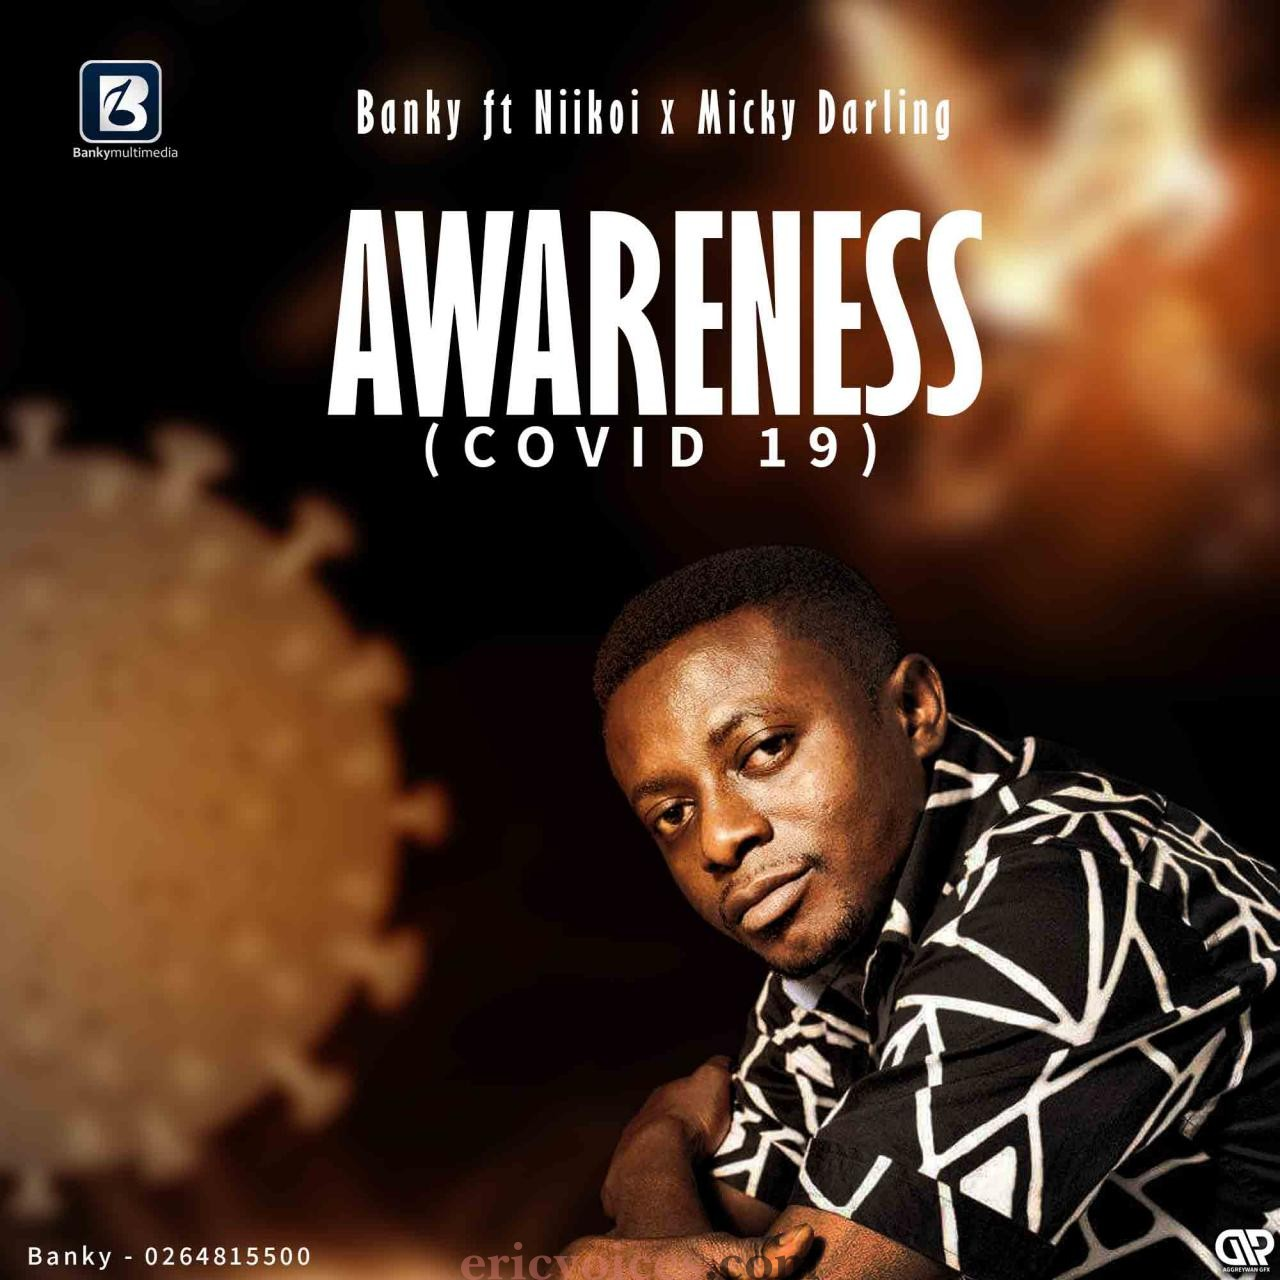 Banky Ft Micky Darling x Niikoi - Awareness (Covid-19)